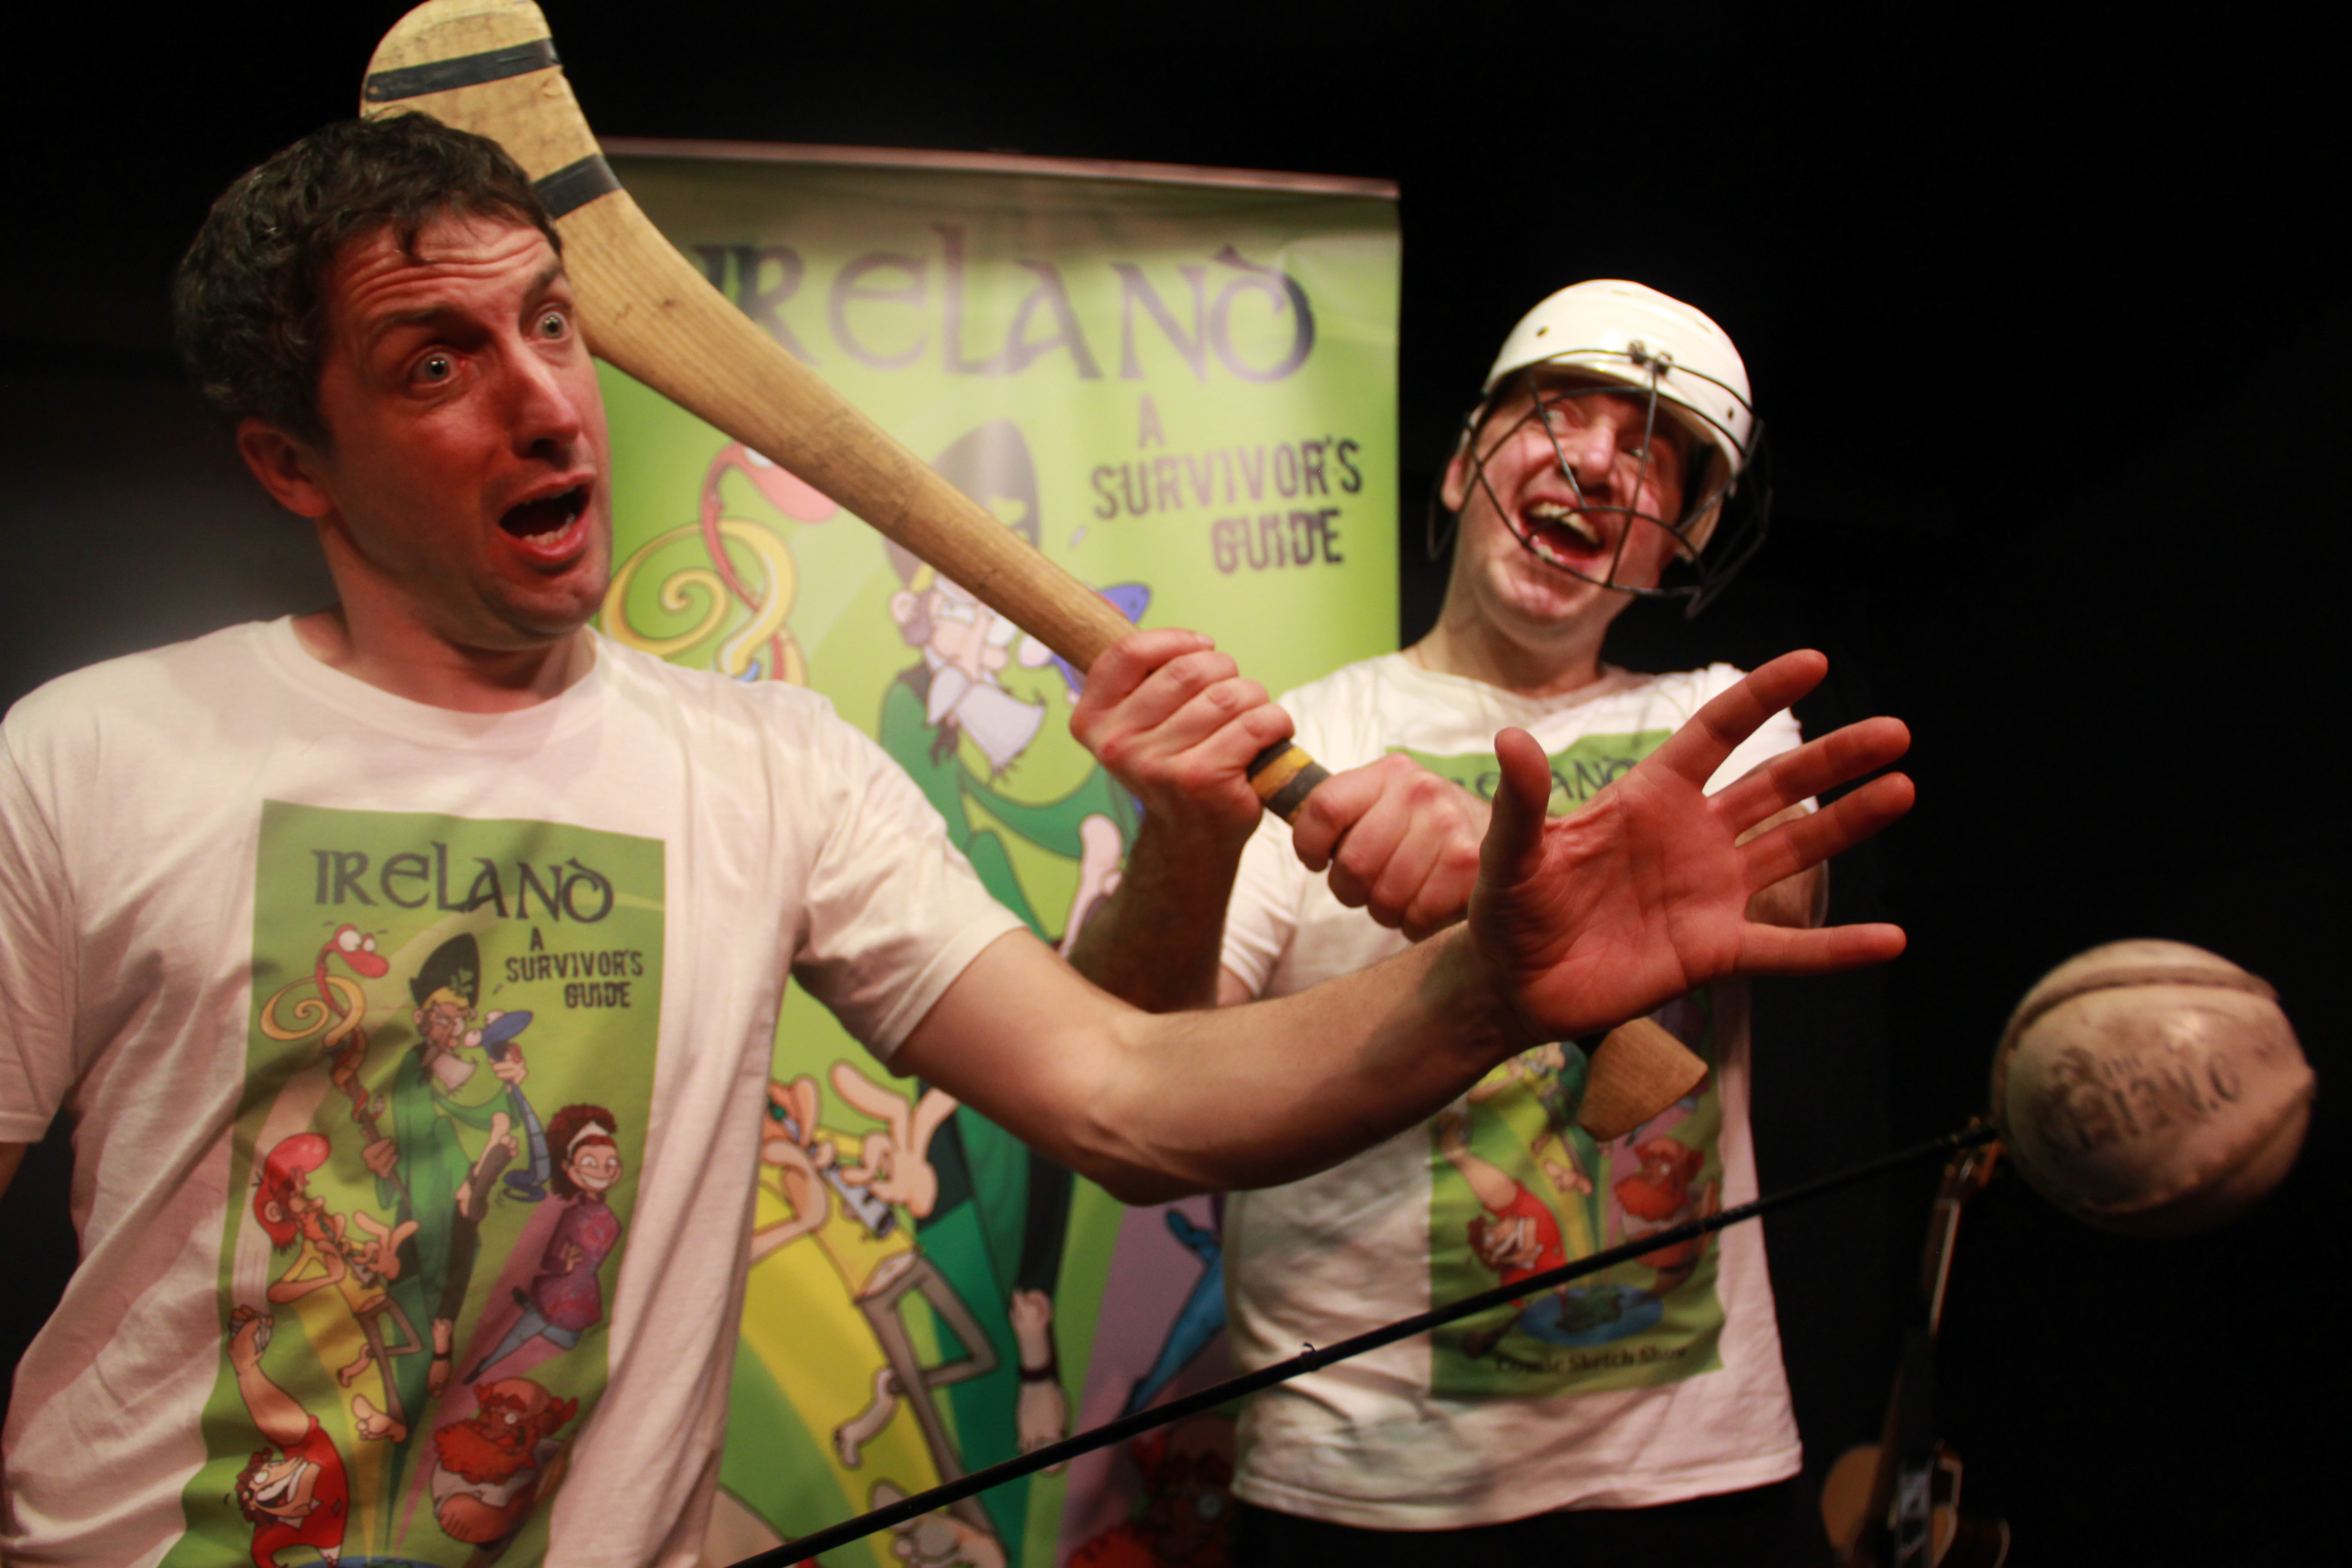 The Sport of Hurling live on stage-